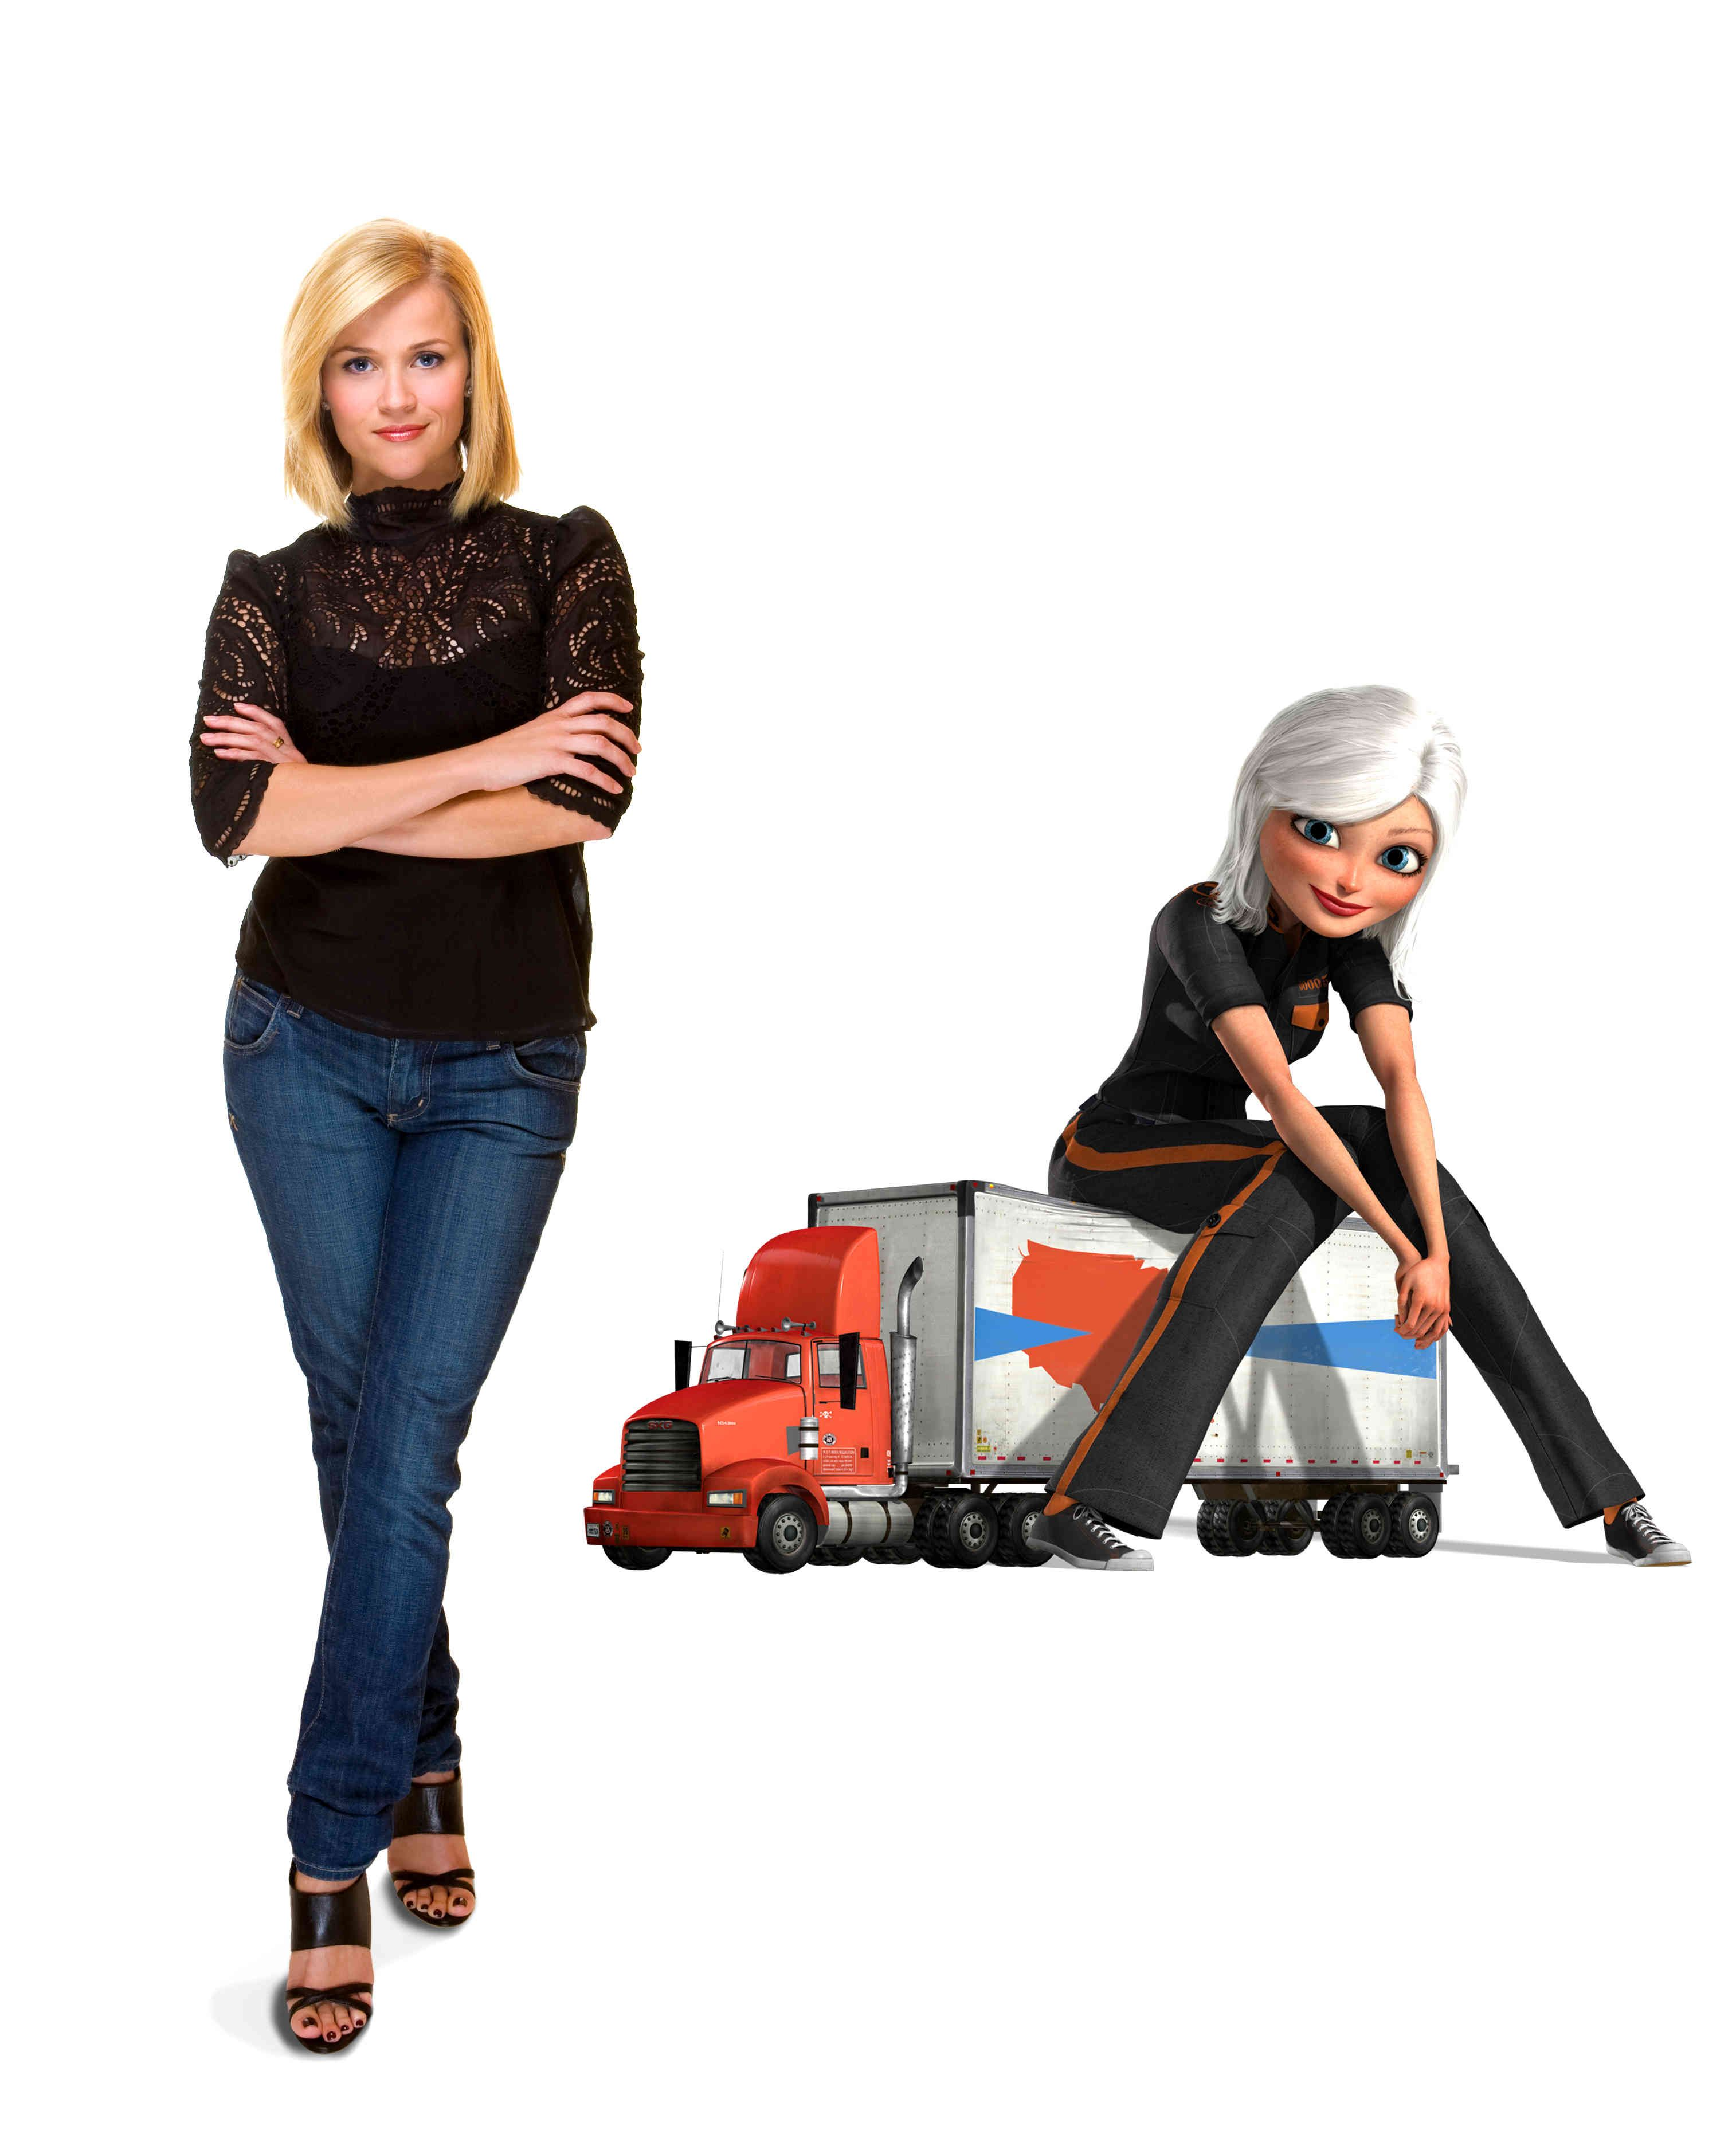 Monsters Vs Aliens 2009 Reese Witherspoon As Susan Murphy Ginormica Voice Famosos La Voz